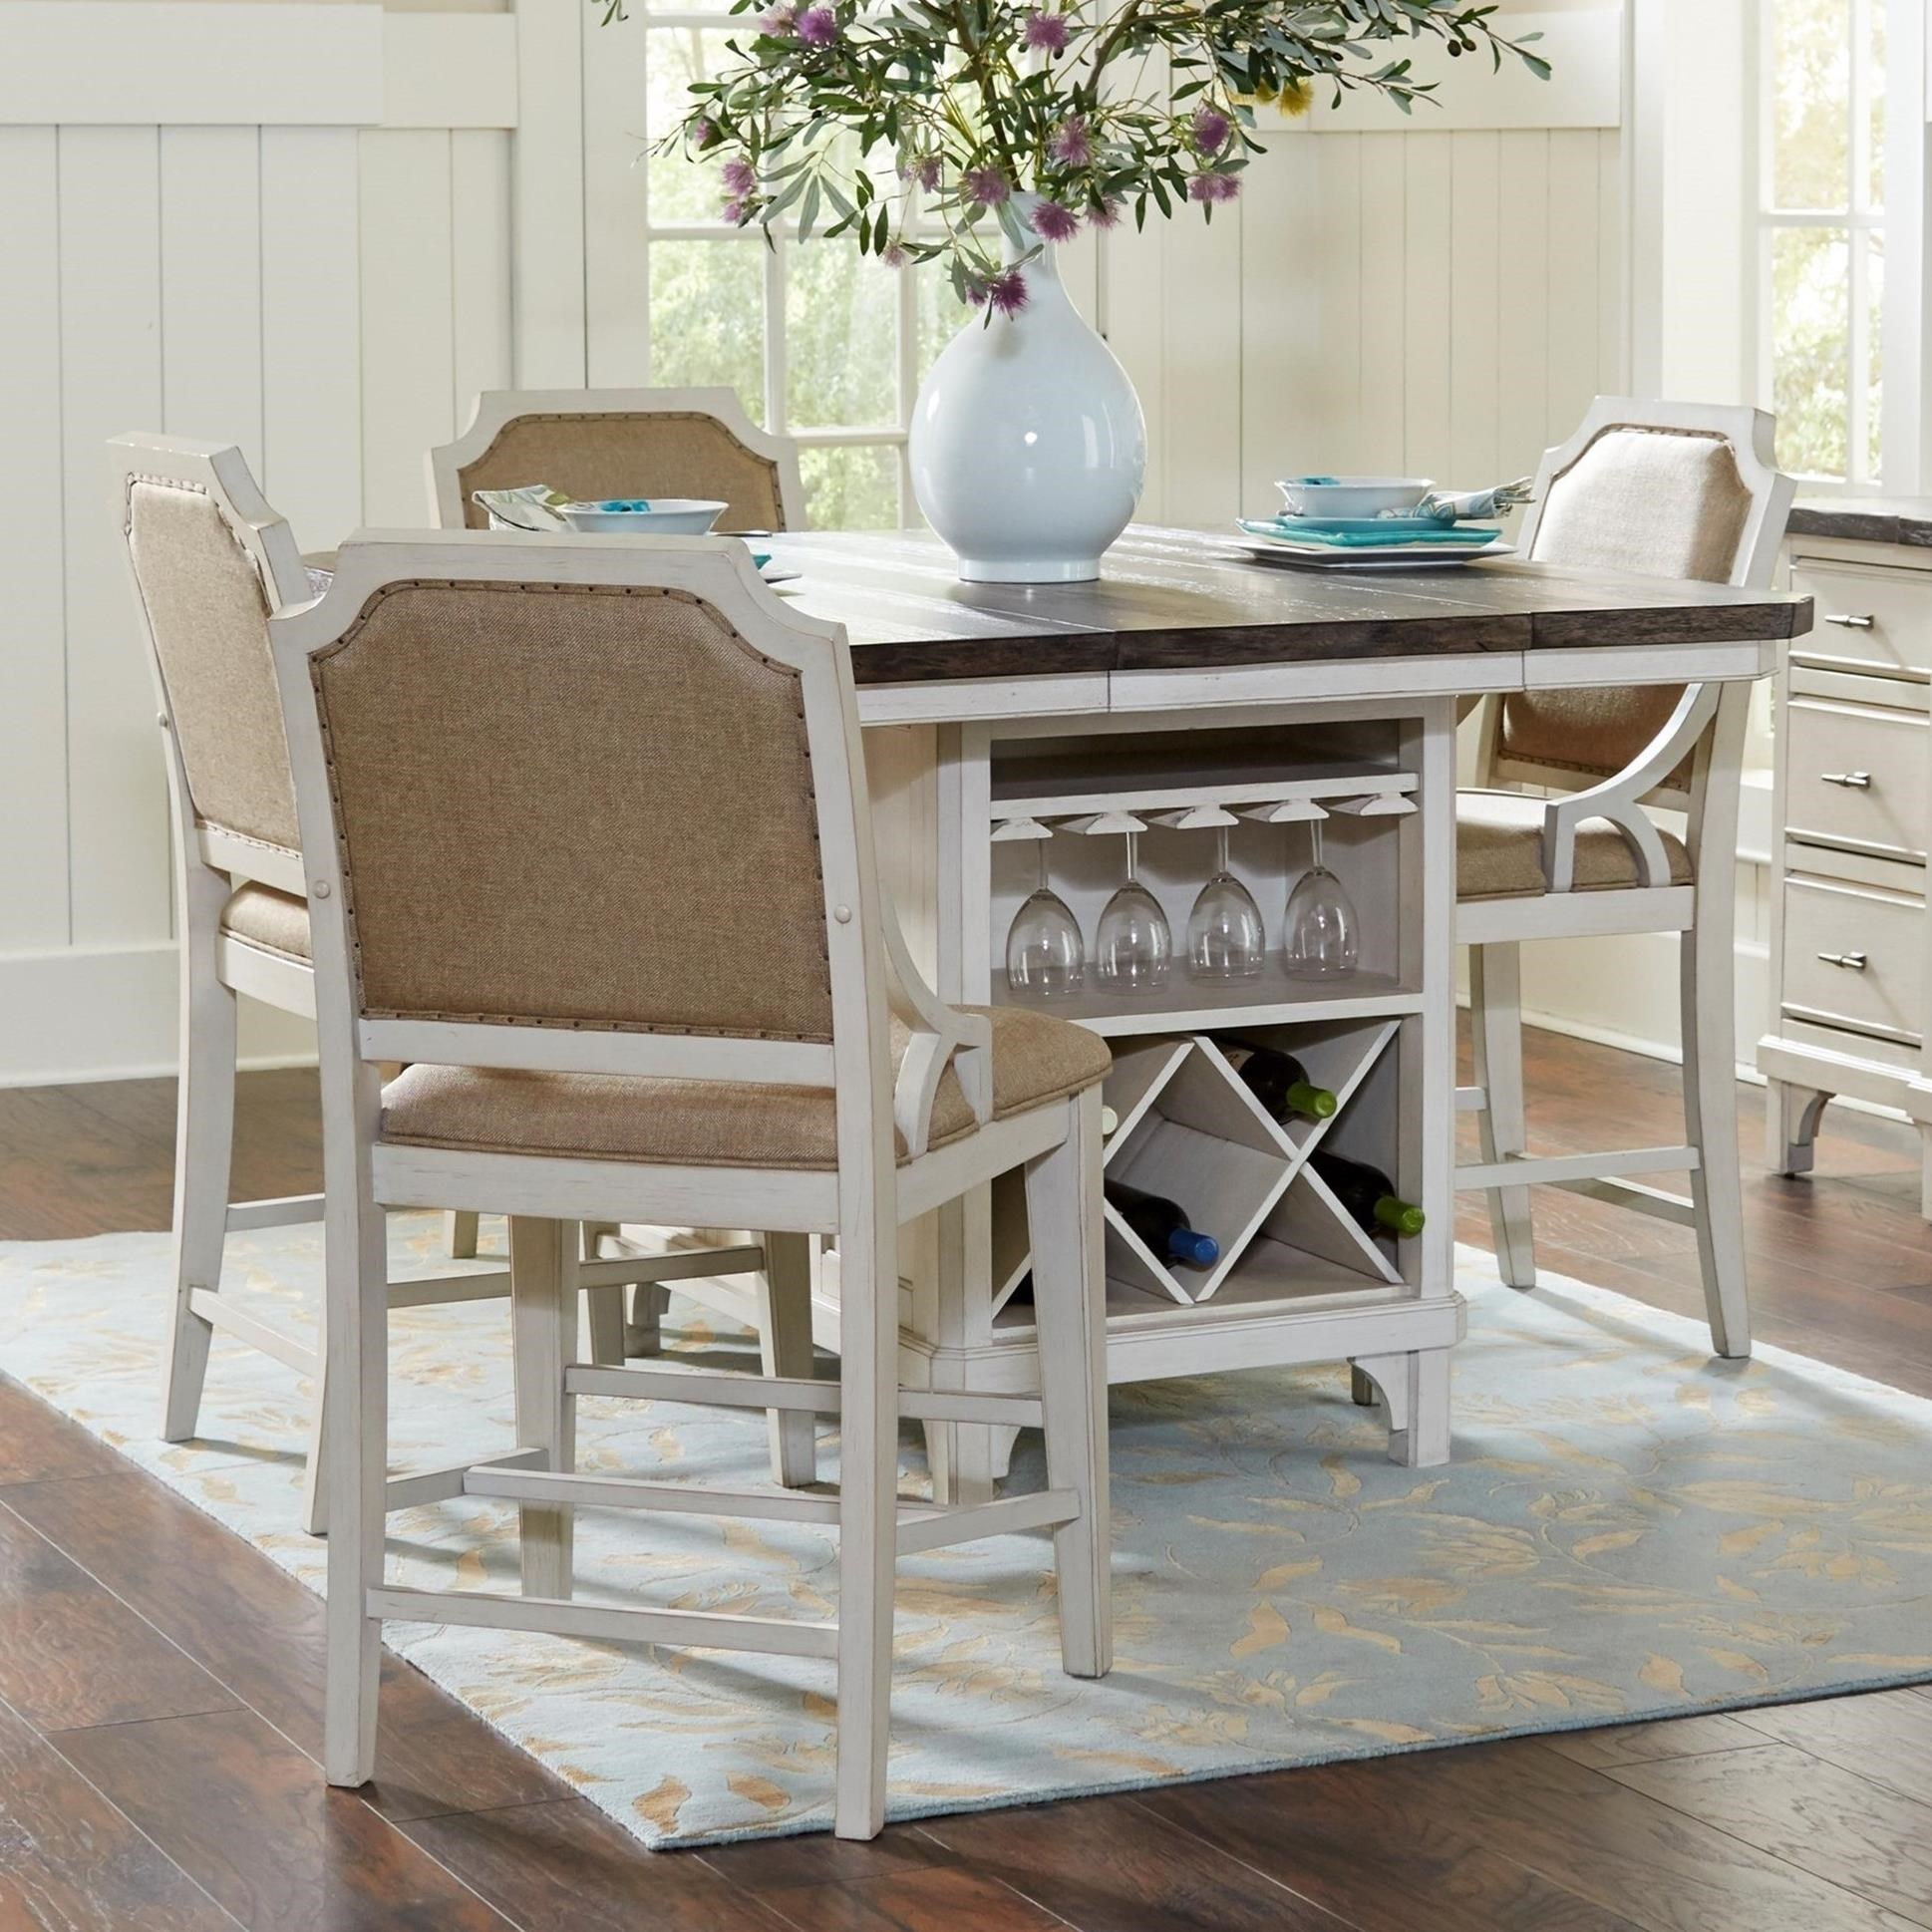 Avalon Furniture Mystic Cay 5-Piece Kitchen Island Table Set & 5-Piece Kitchen Island Table Set - Mystic Cay by Avalon Furniture ...